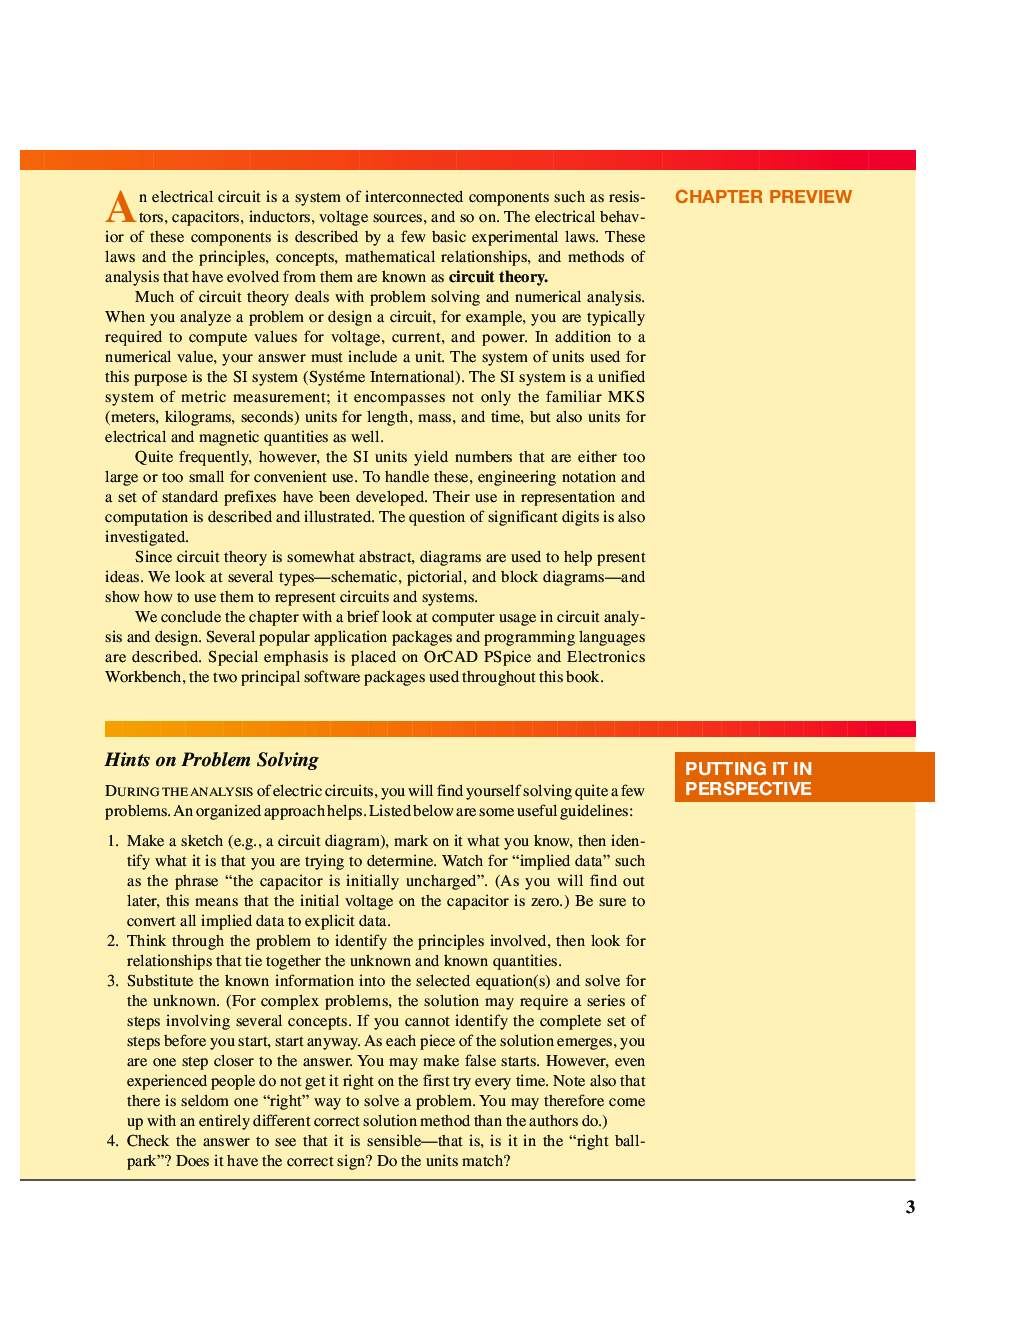 Circuit Analysis Theory and Practice - Page 3